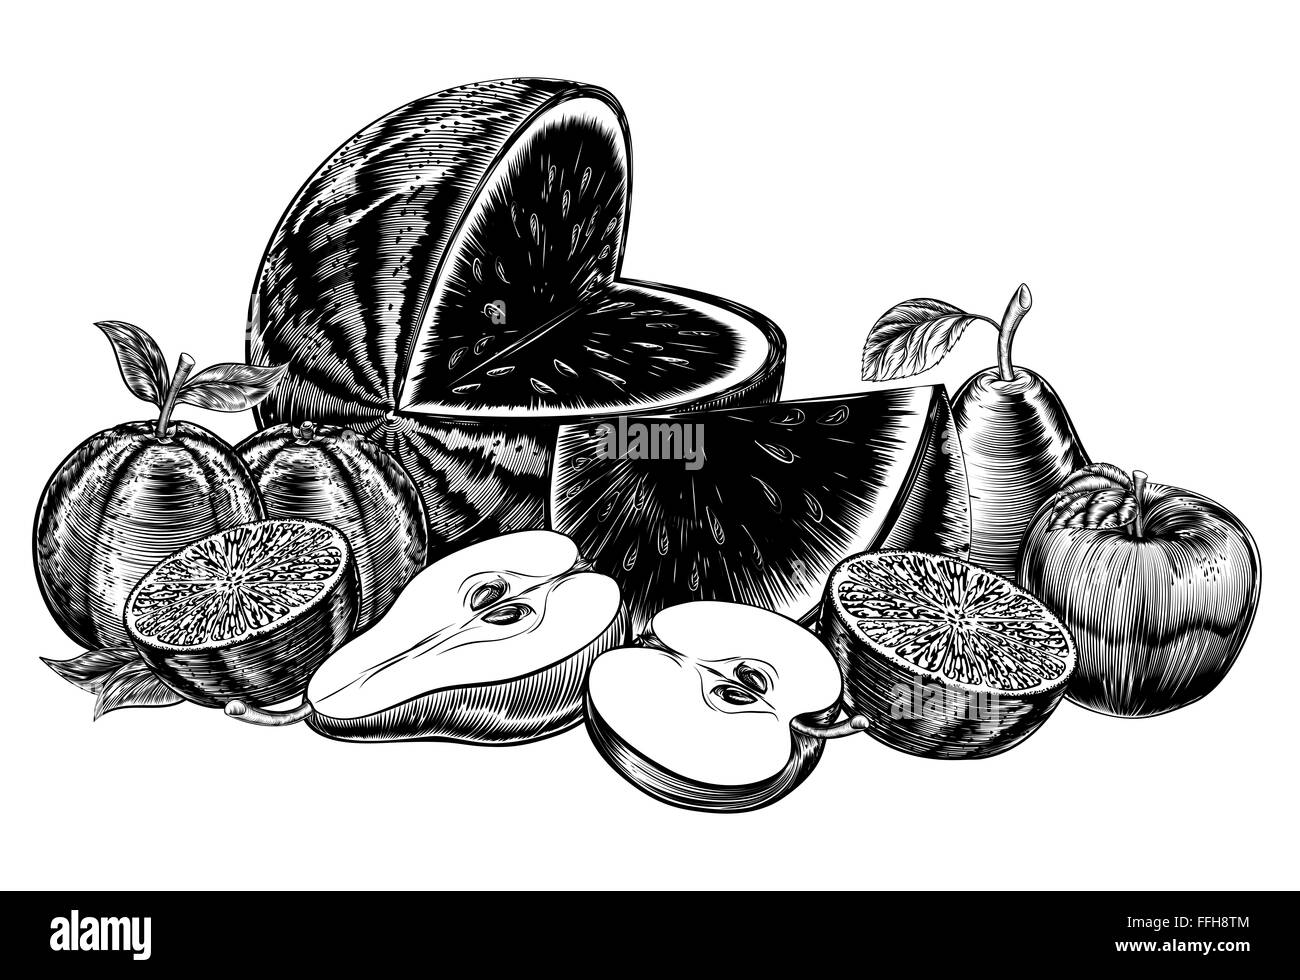 An original illustration of a fruit in a vintage woodcut or woodblock style, including apples, pears, water melon, - Stock Image